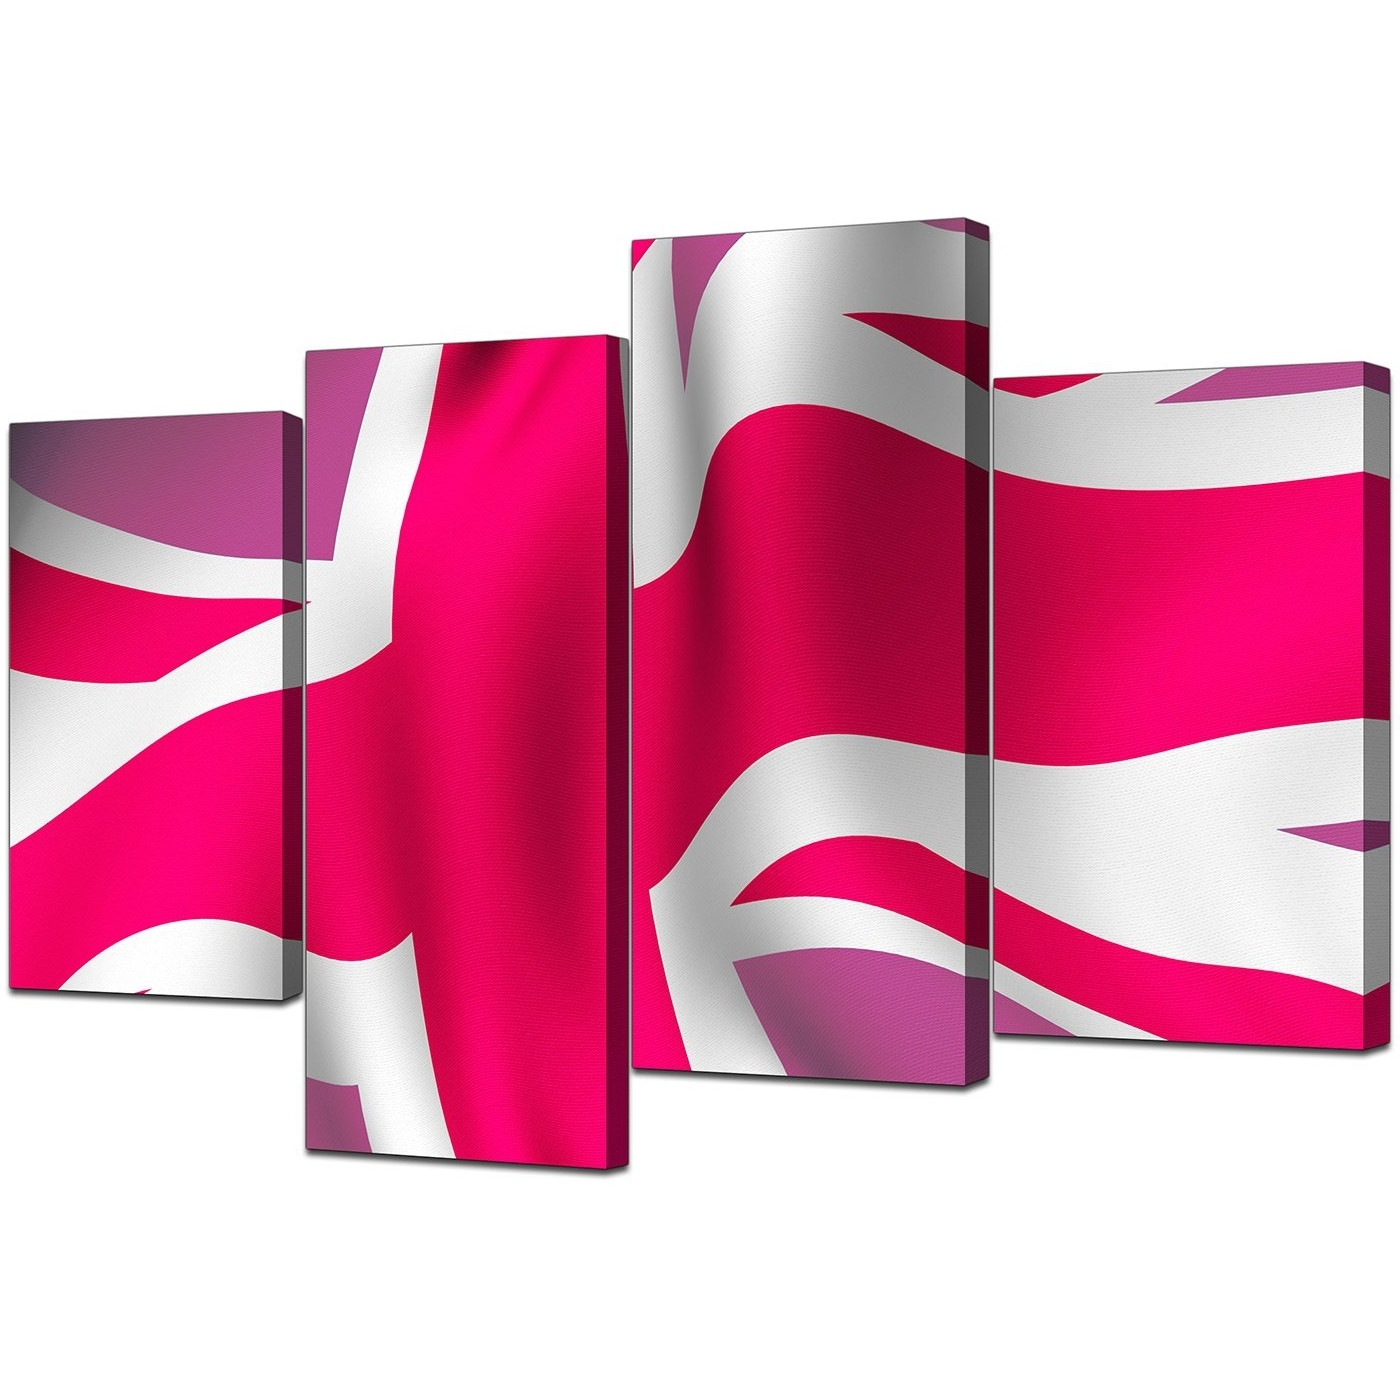 Modern Union Jack Canvas Prints In Pink – For Bedroom For Trendy Union Jack Canvas Wall Art (View 2 of 15)